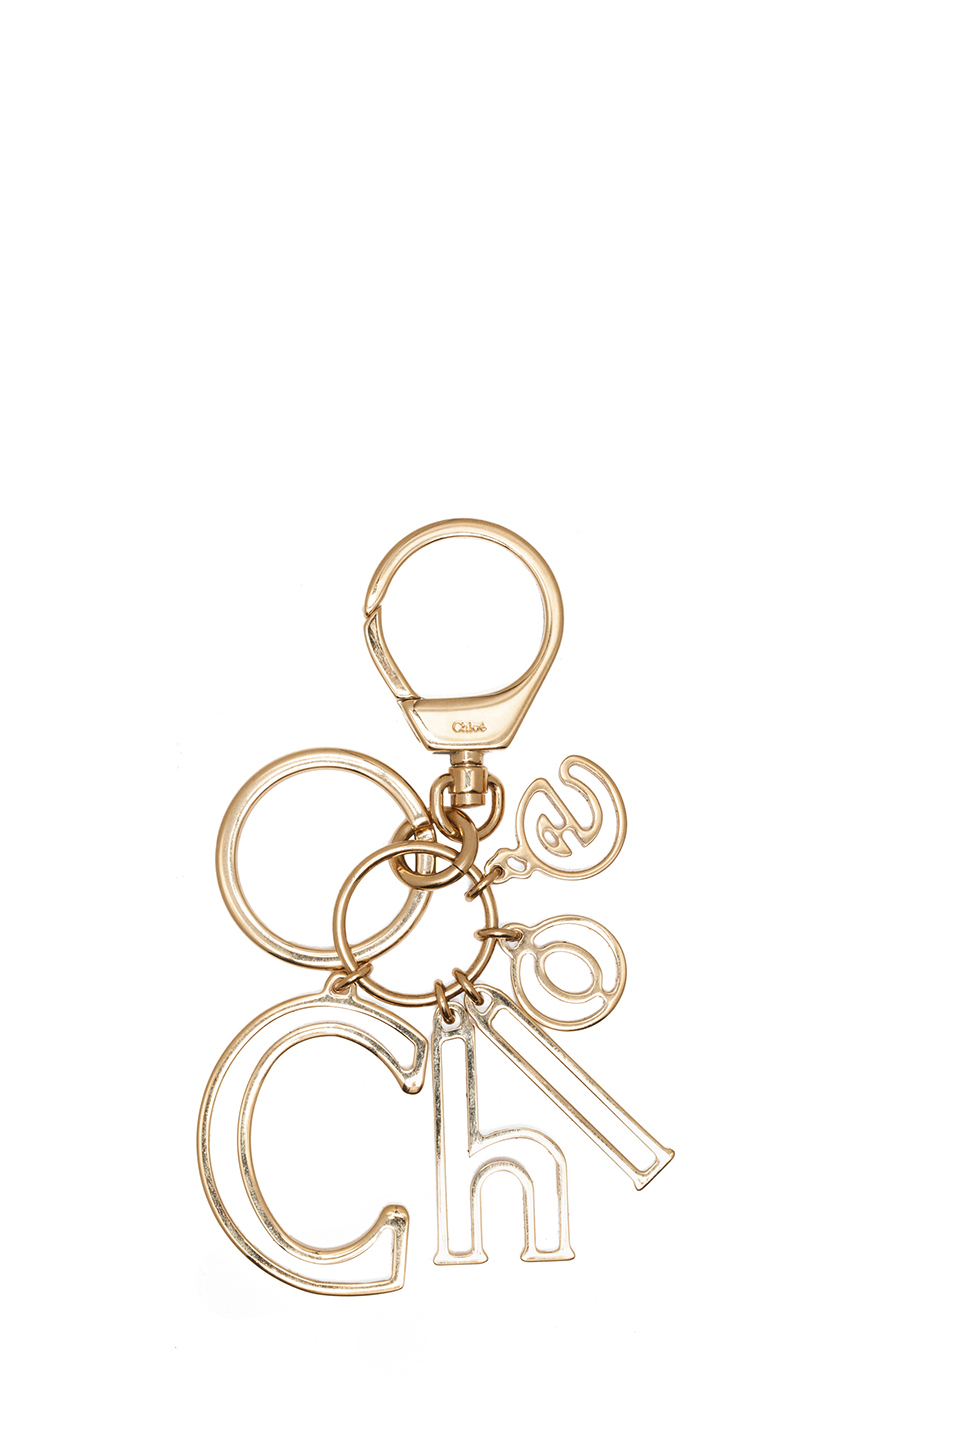 chloe letters plated key ring in gold 1 With chloe letter ring